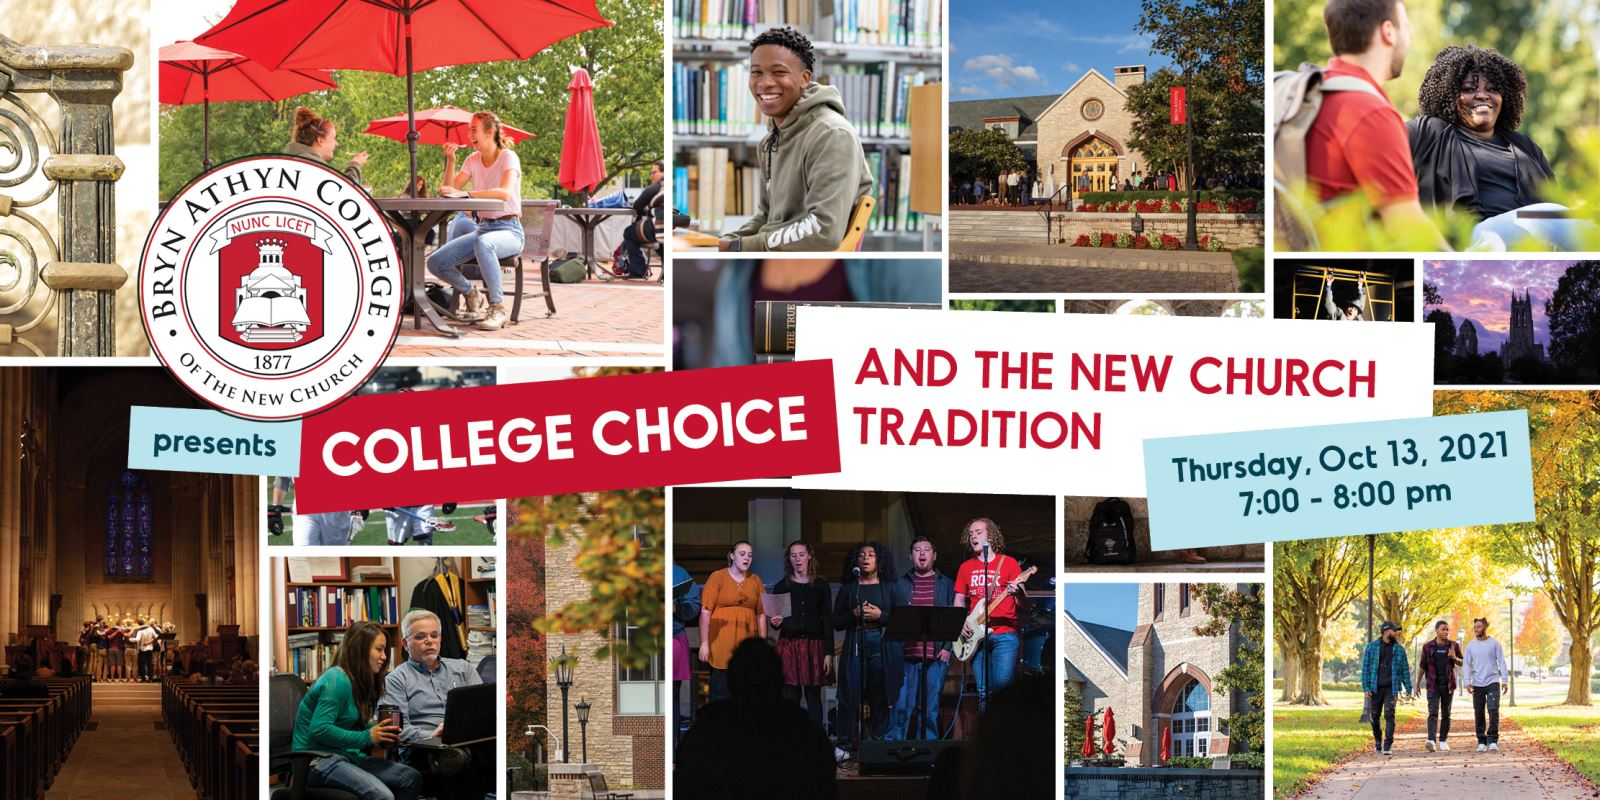 College Choice and the New Church Tradition Webinar